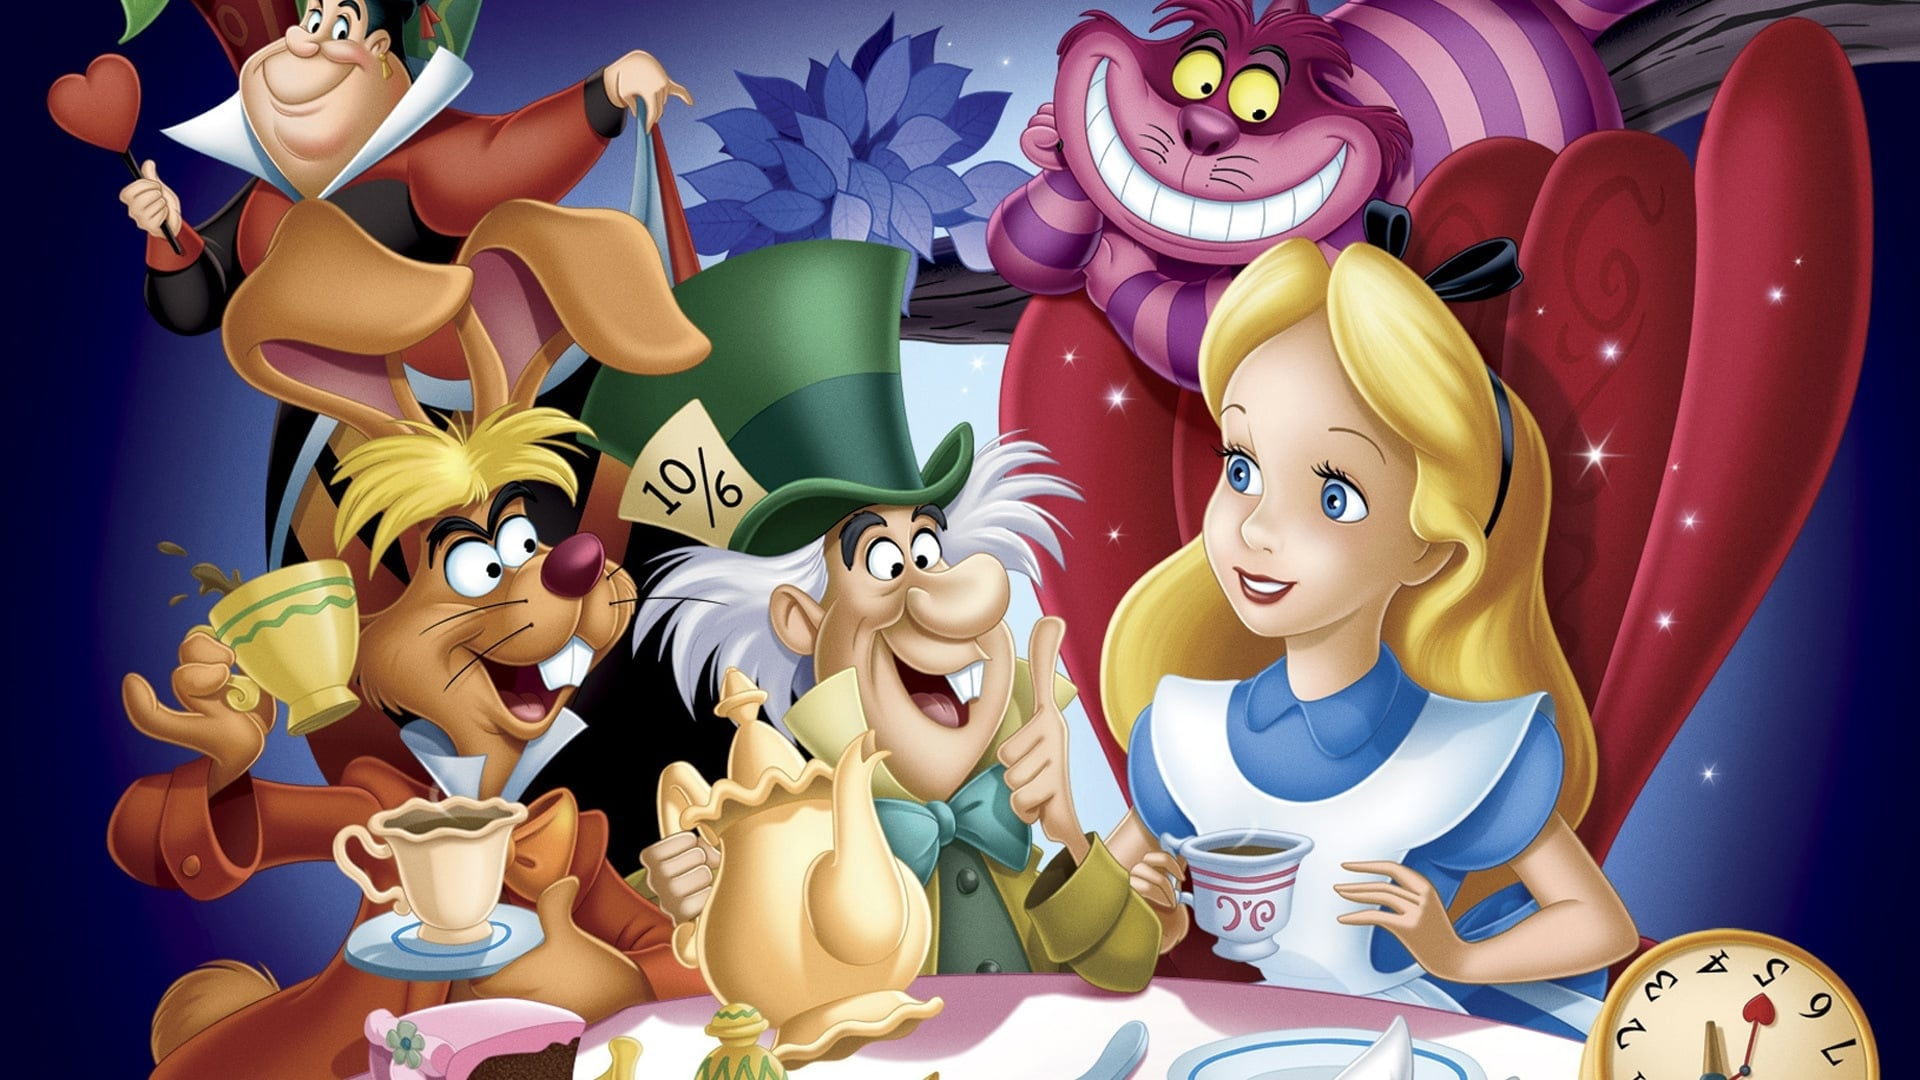 alice in wonderland full movie 1951 free online